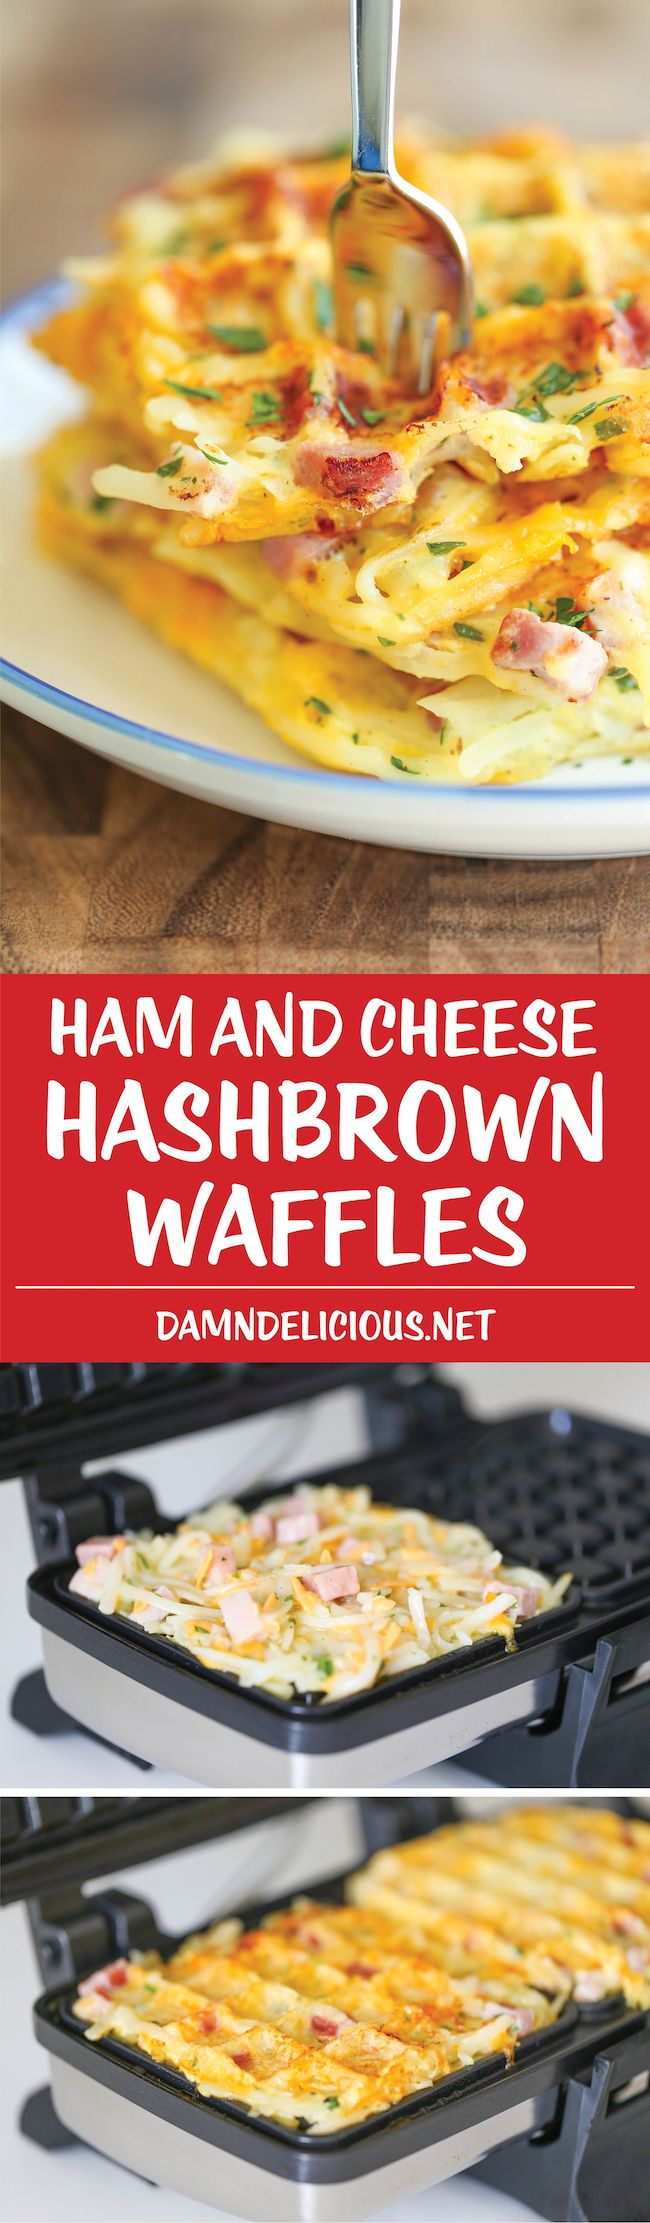 Ham and Cheese Hashbrown Waffles – Southern food, easy breakfast recipe